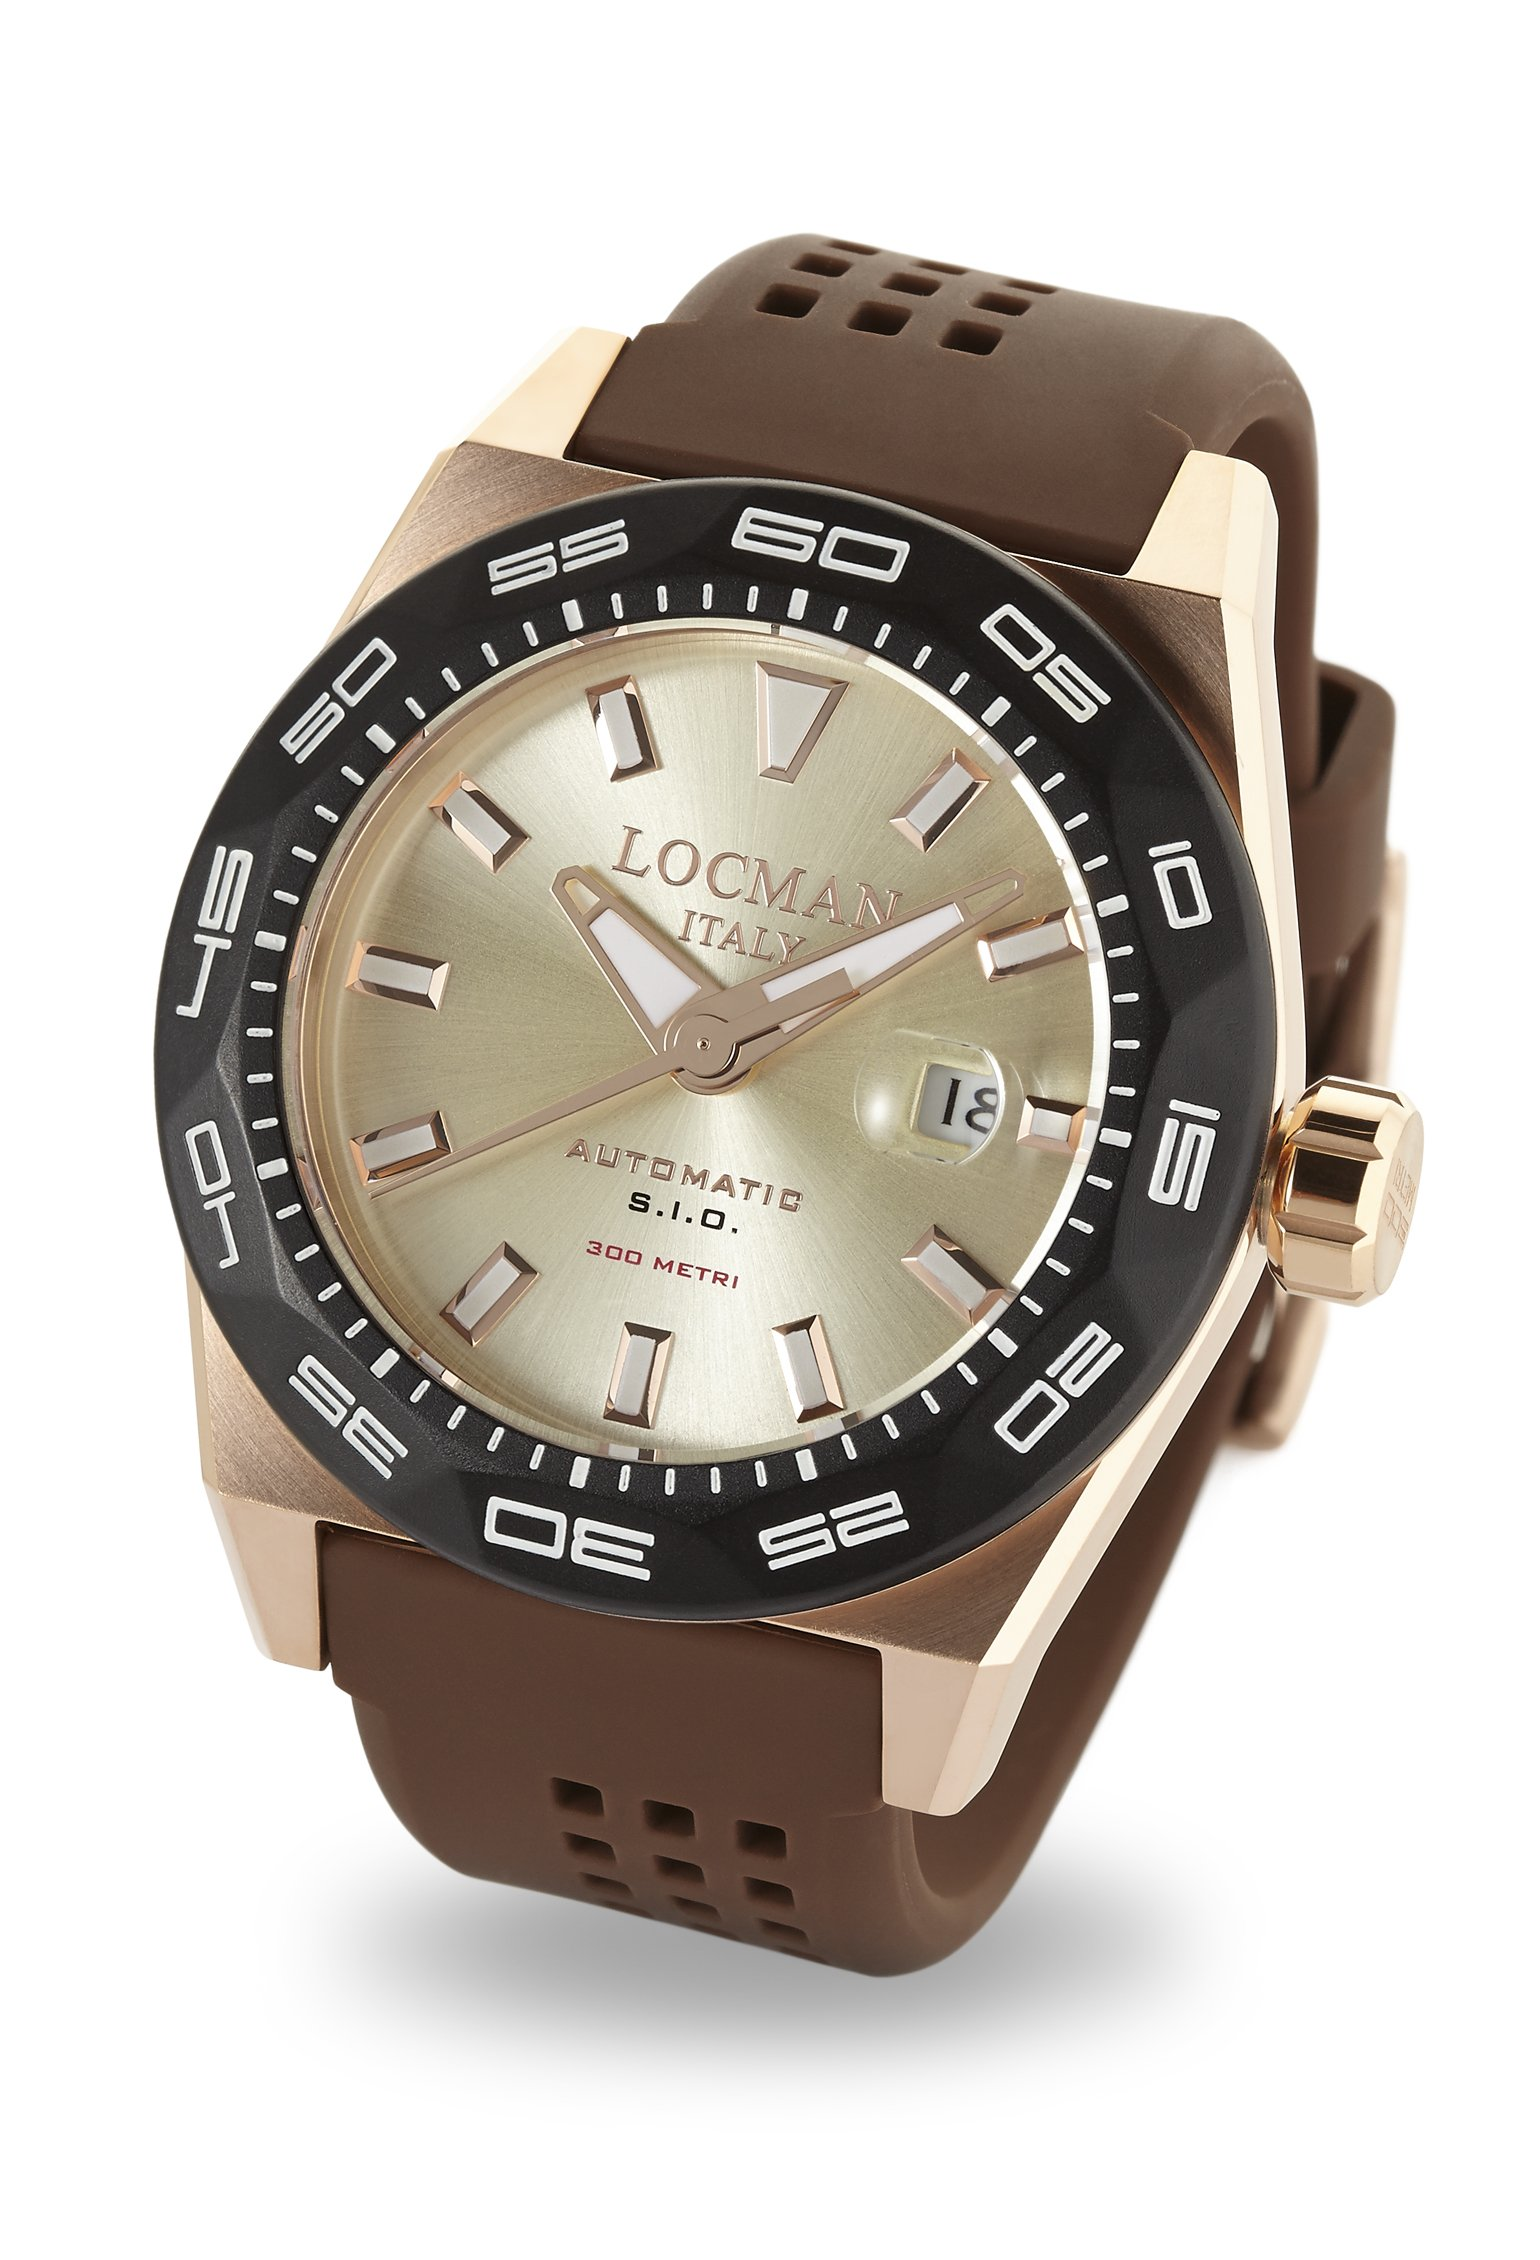 Locman Italy Men's 'Stealth 300 Metri' Automatic Steel-Two-Tone and Rubber Diving Watch, Color:Brown (Model: 0215V6-RKAV5NS2N) by Locman Italy